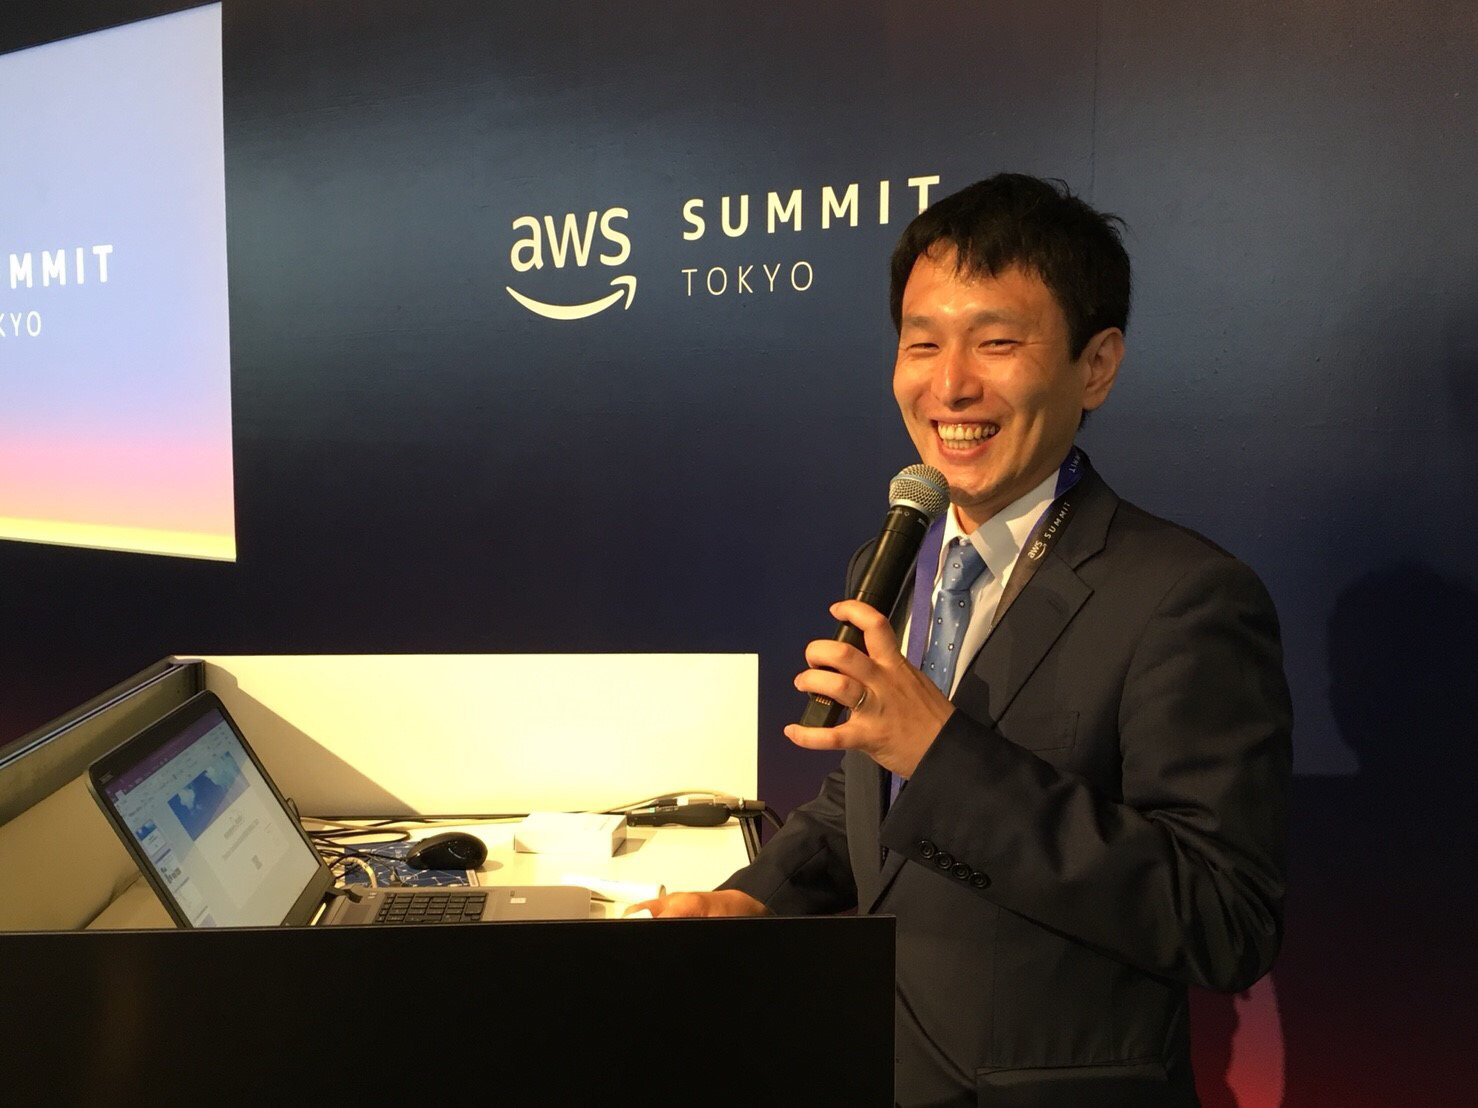 AWS Summit 2018